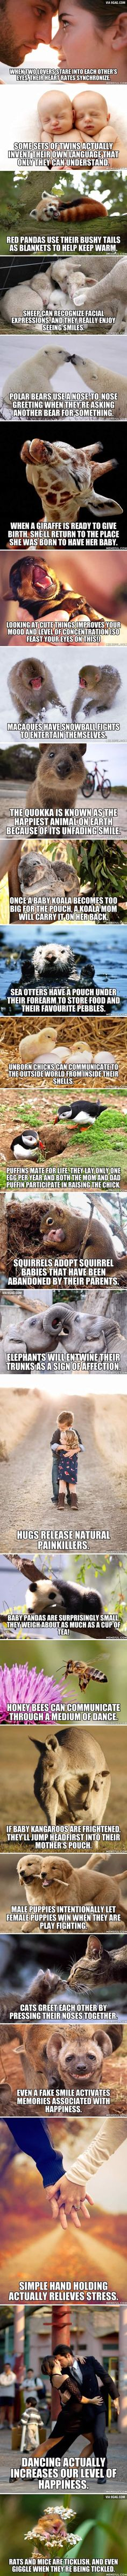 26 Amazingly Sweet And Scientific Facts - 9GAG